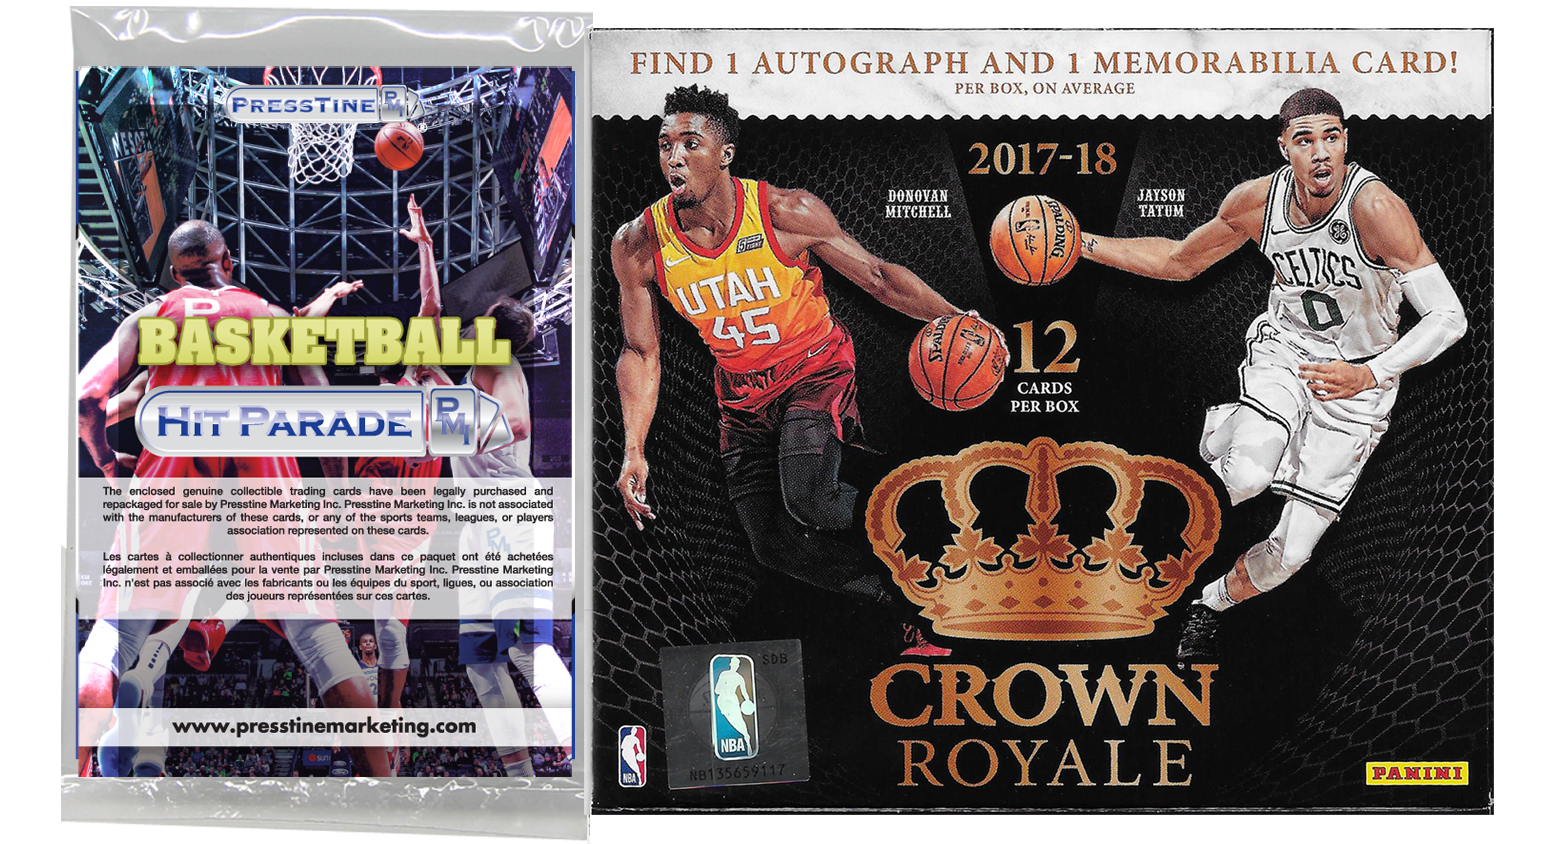 - Presstine Basketball Hit Parade 2017-2018 Panini Crown Royale Edition